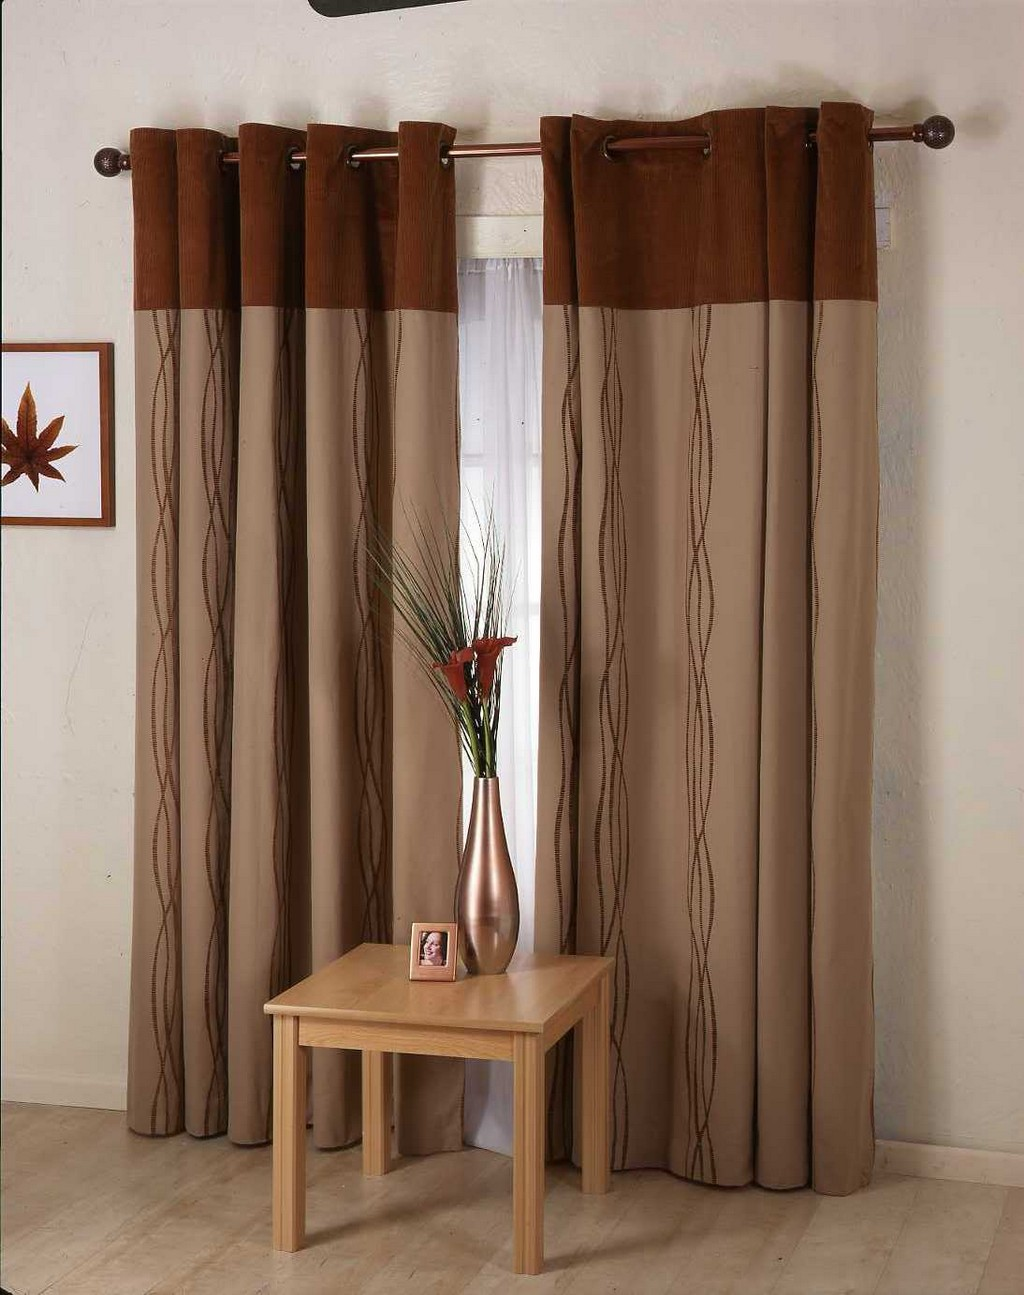 thermal drapes, window drapes, down pillows, cheap duvet covers